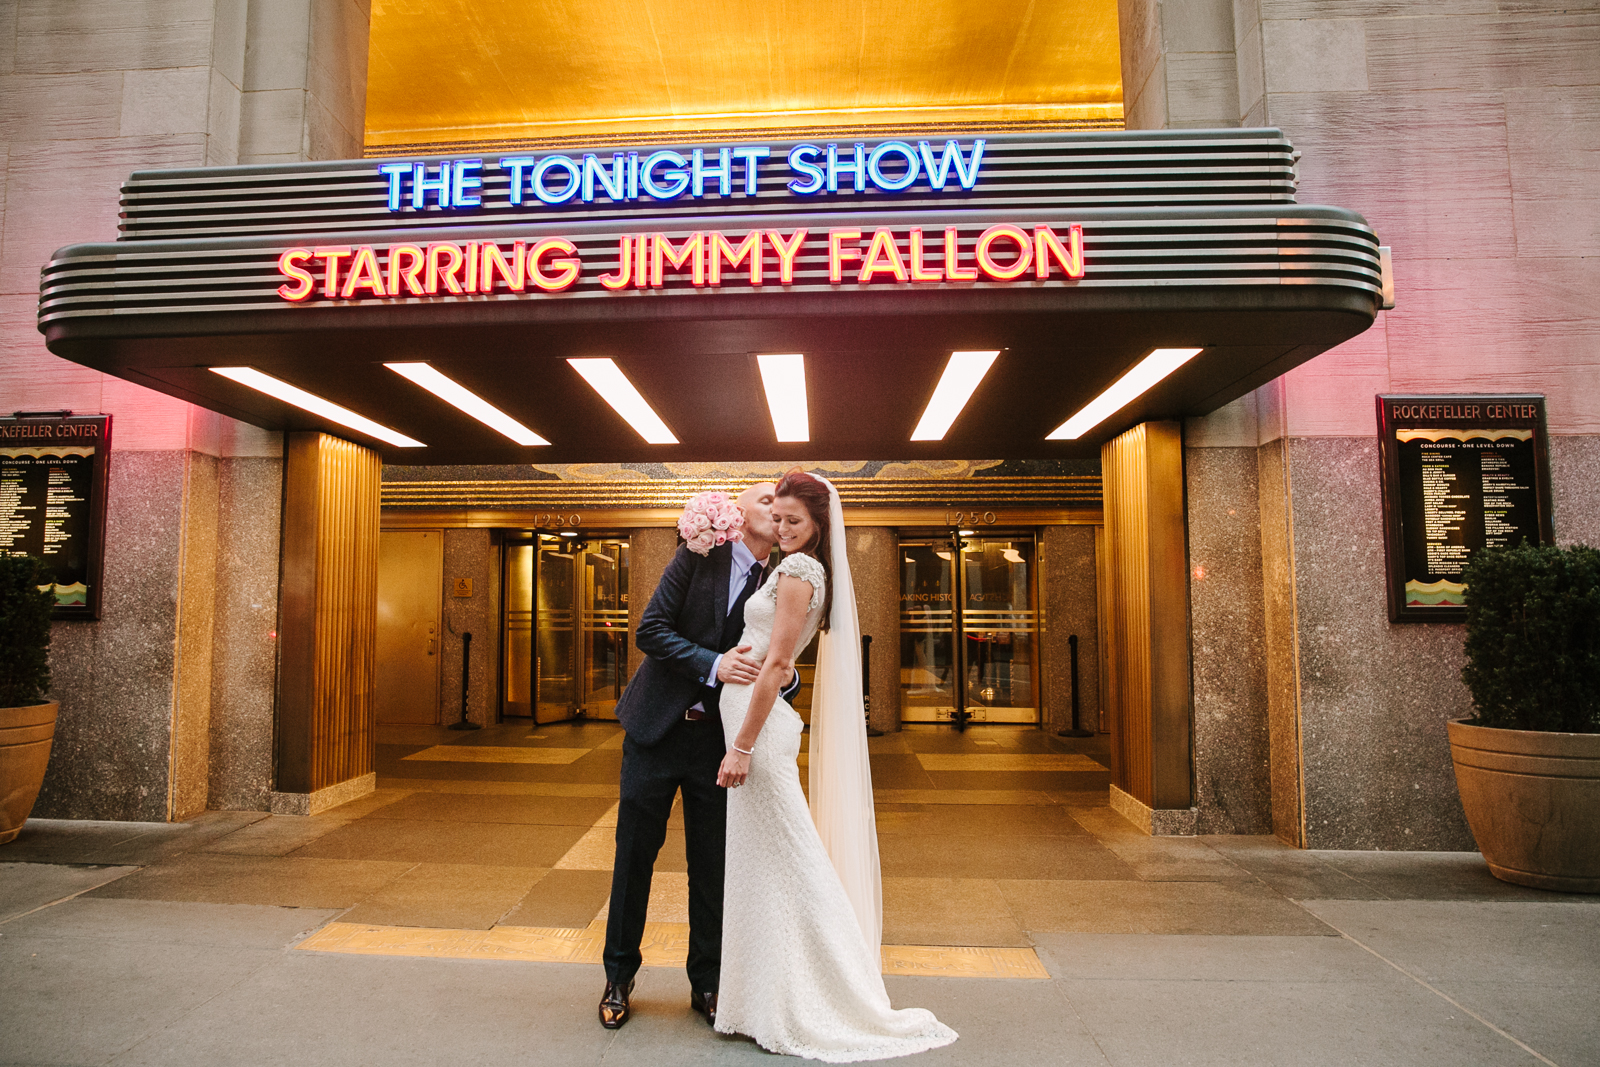 NYC-wedding-photos-by-Tanya-Isaeva-3.jpg